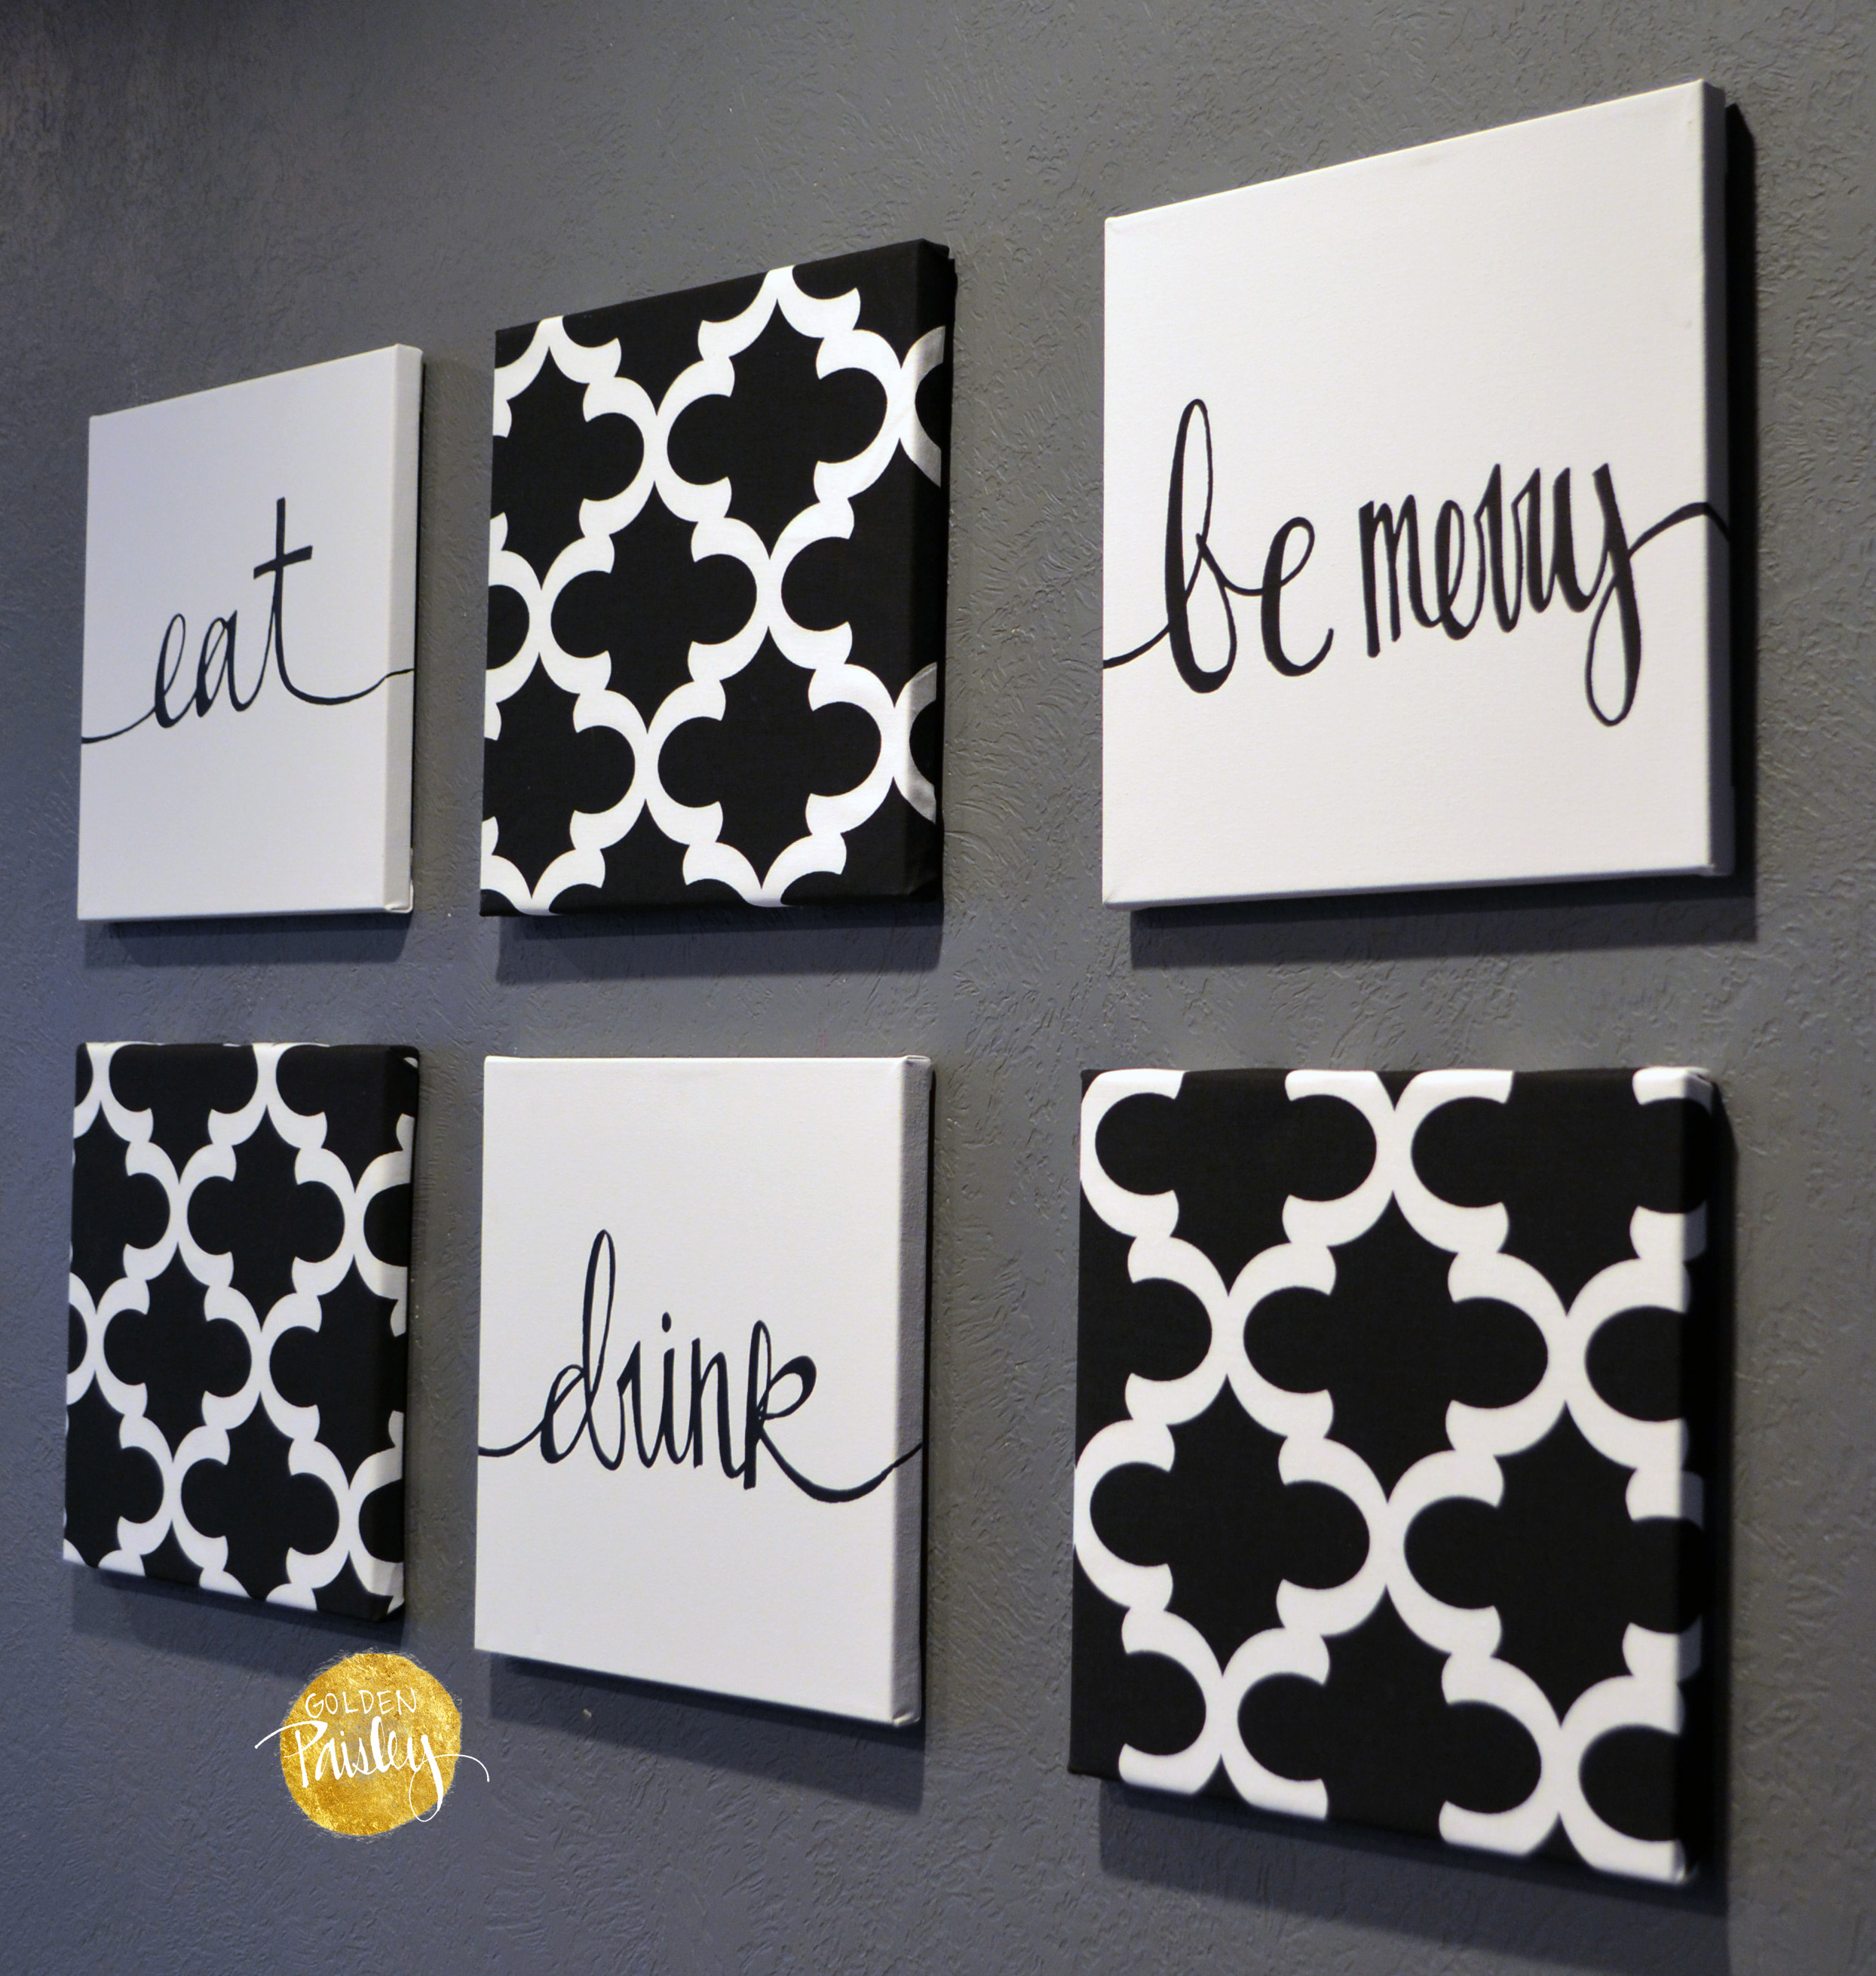 Black Wall Decor Glamorous Black And White Moroccan 6 Pack Wall Art Inspiration